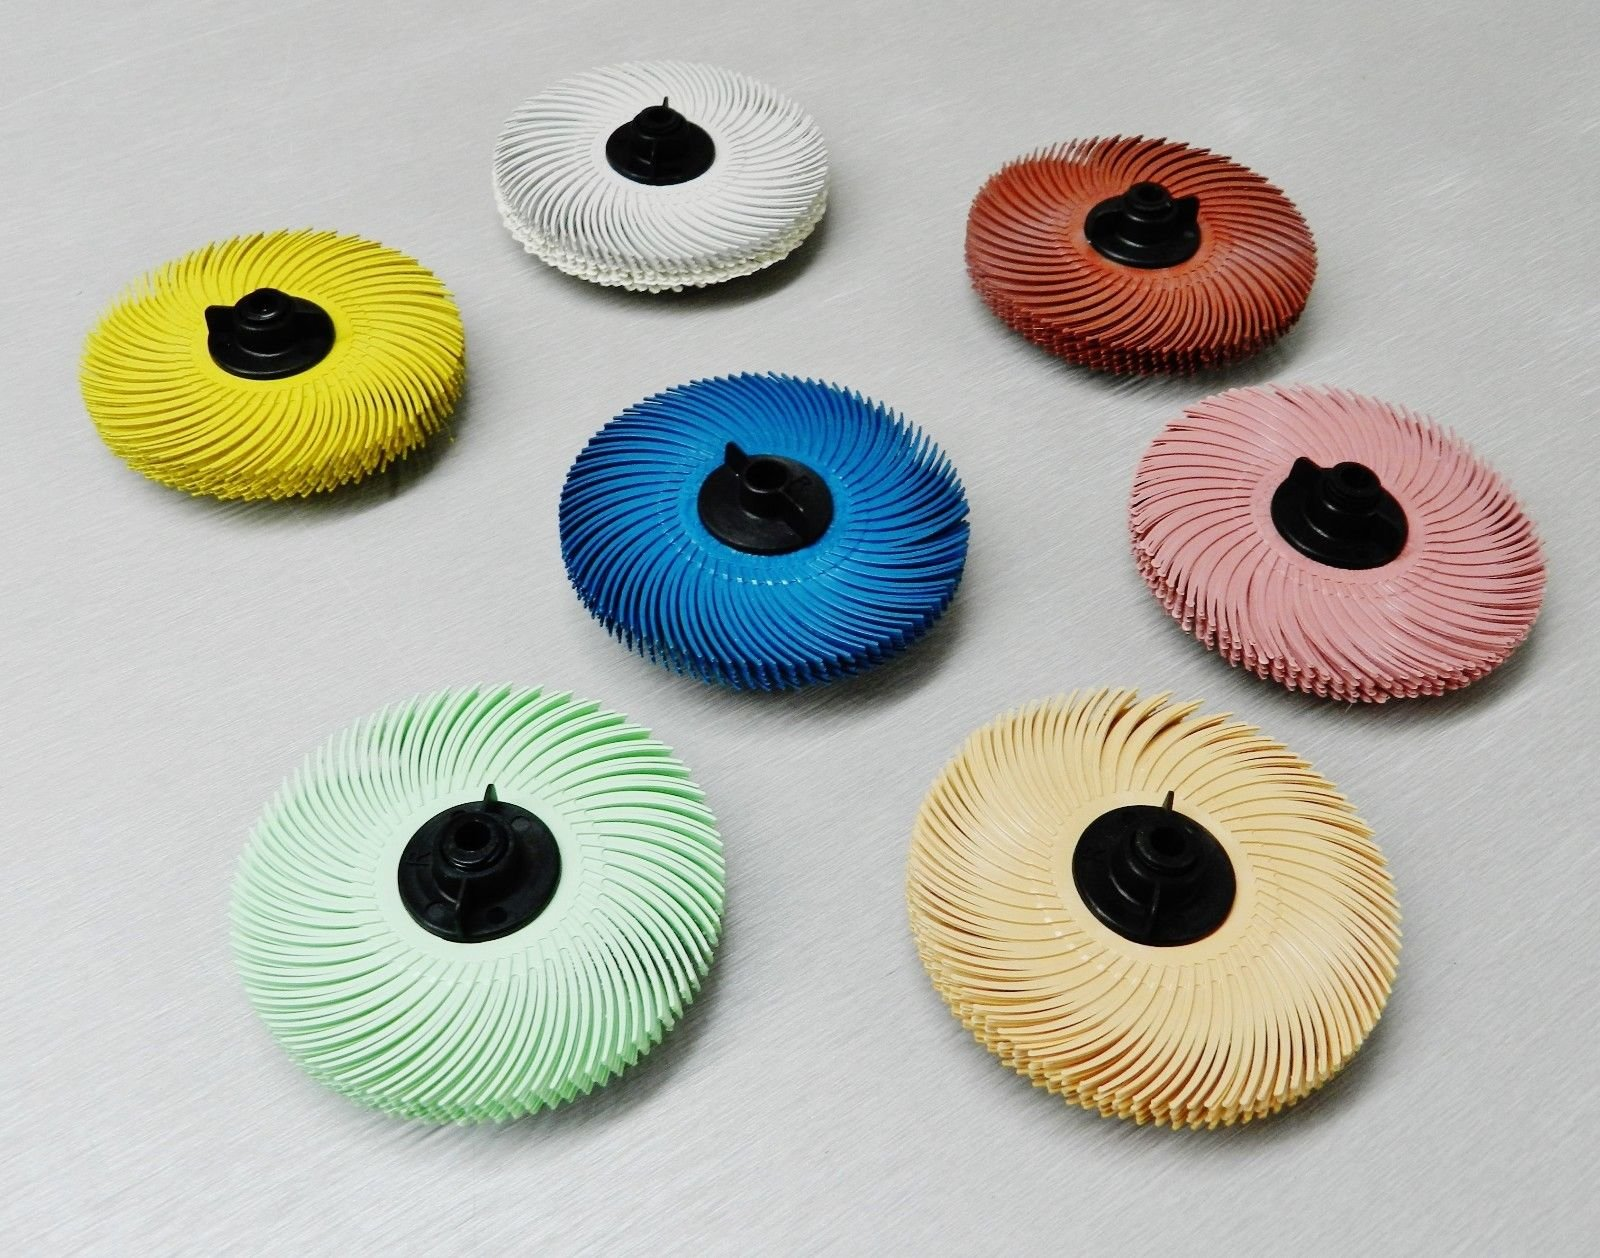 3M Radial Bristle Disc Brush 3'' Set of All 7 Grades 6-PLY with Hubs Assortment by NOVELTOOLS (Image #3)